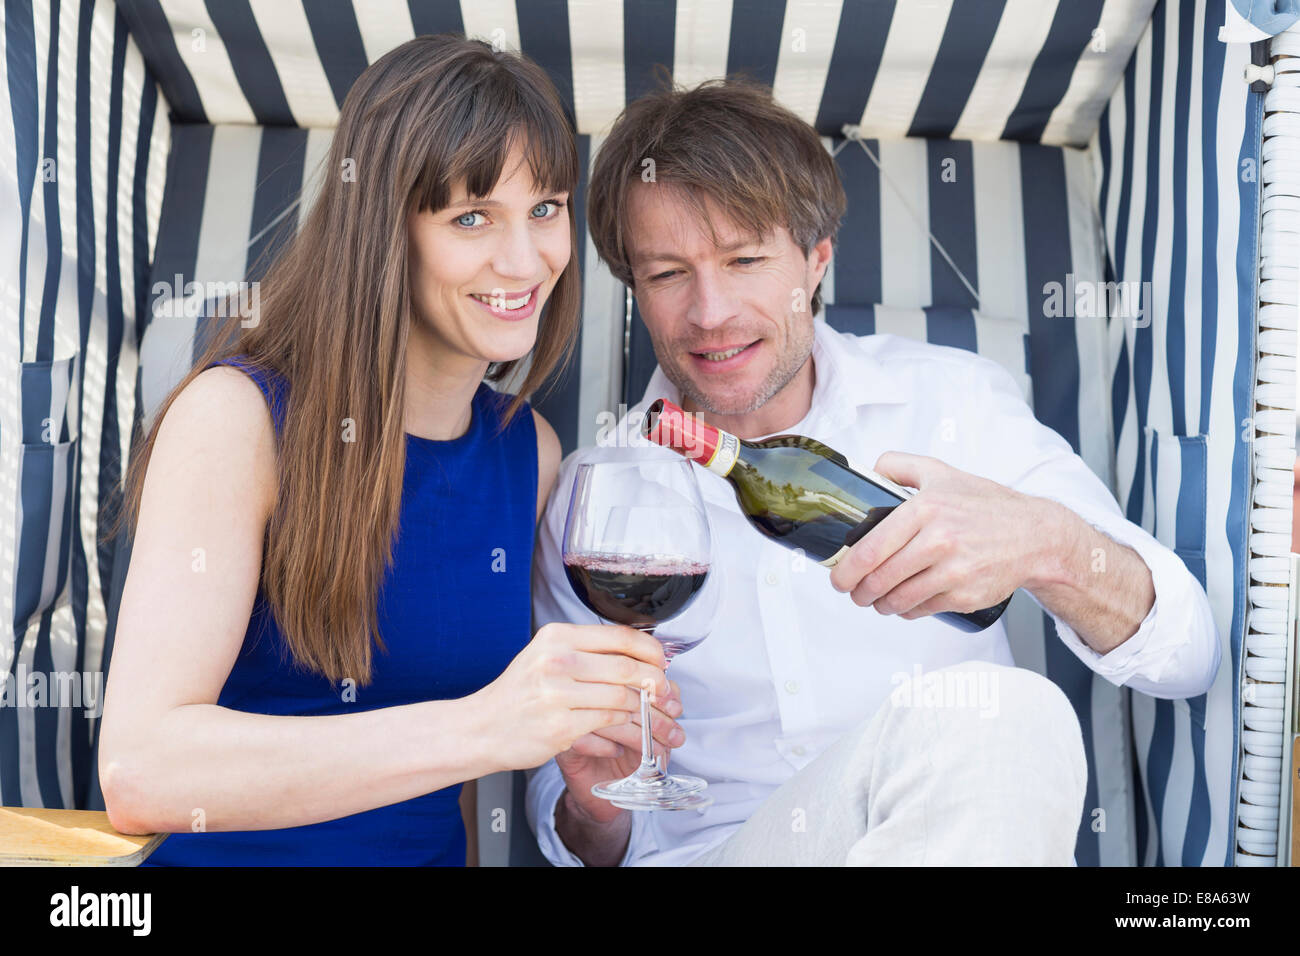 Couple having vine in roofed wicker beach chair, smiling Stock Photo